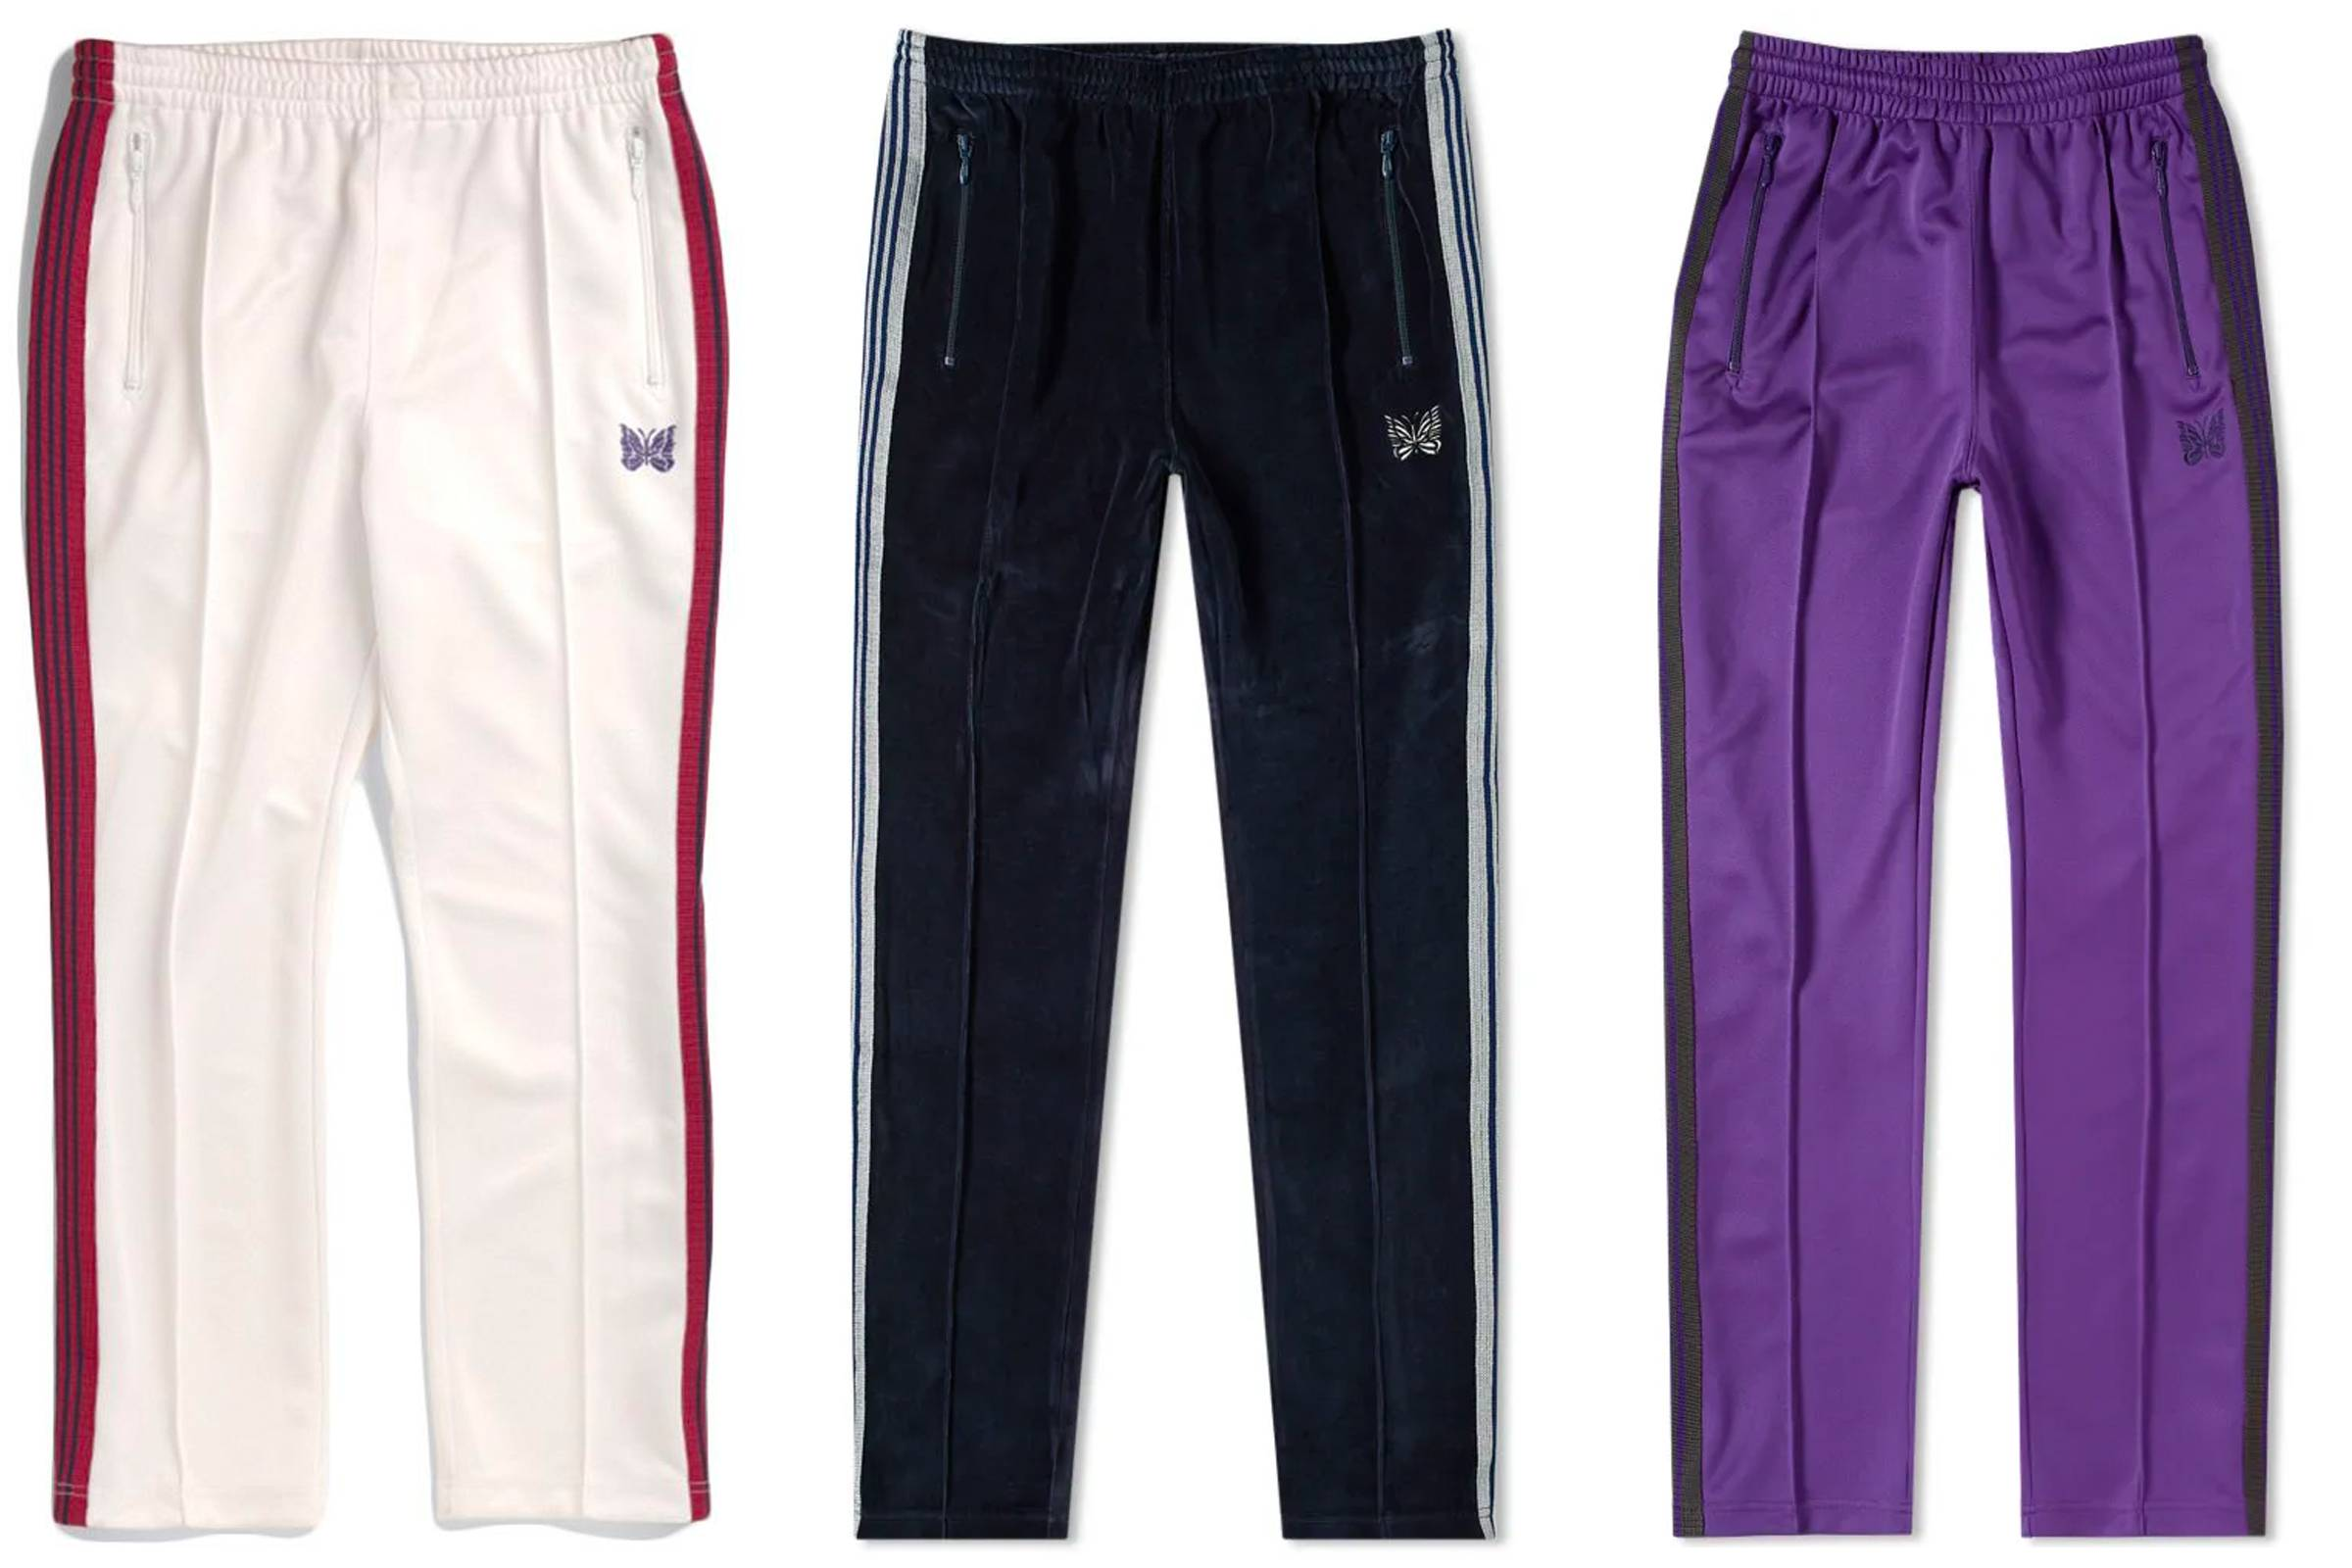 Classic or Trash: Needles Track Pant